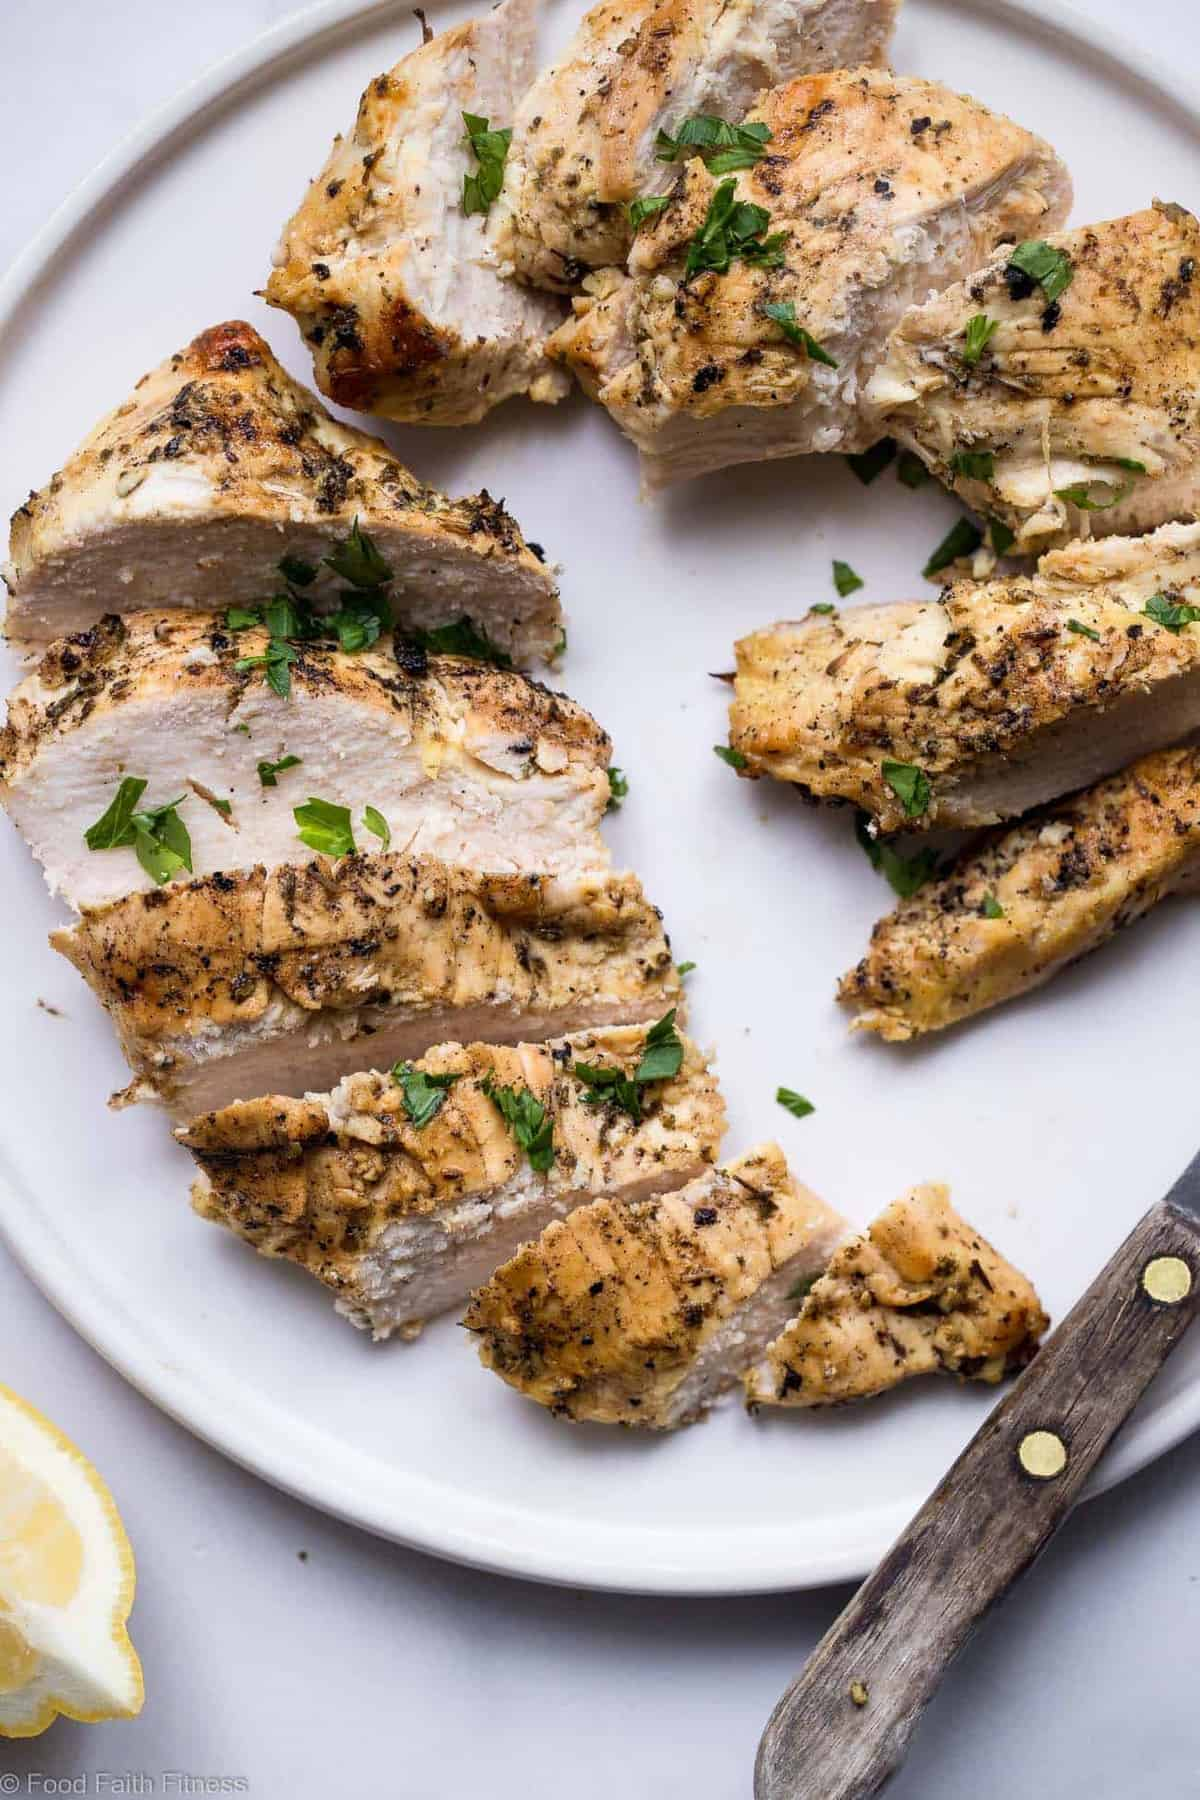 Easy Keto Chicken Marinade - This low carb, sugar free Chicken Marinade is the easiest and most versatile marinade for grilled chicken ever! Simple, made from pantry ingredients and gluten free/paleo/whole30!   #Foodfaithfitness   #glutenfree #paleo #lowcarb #keto #whole30